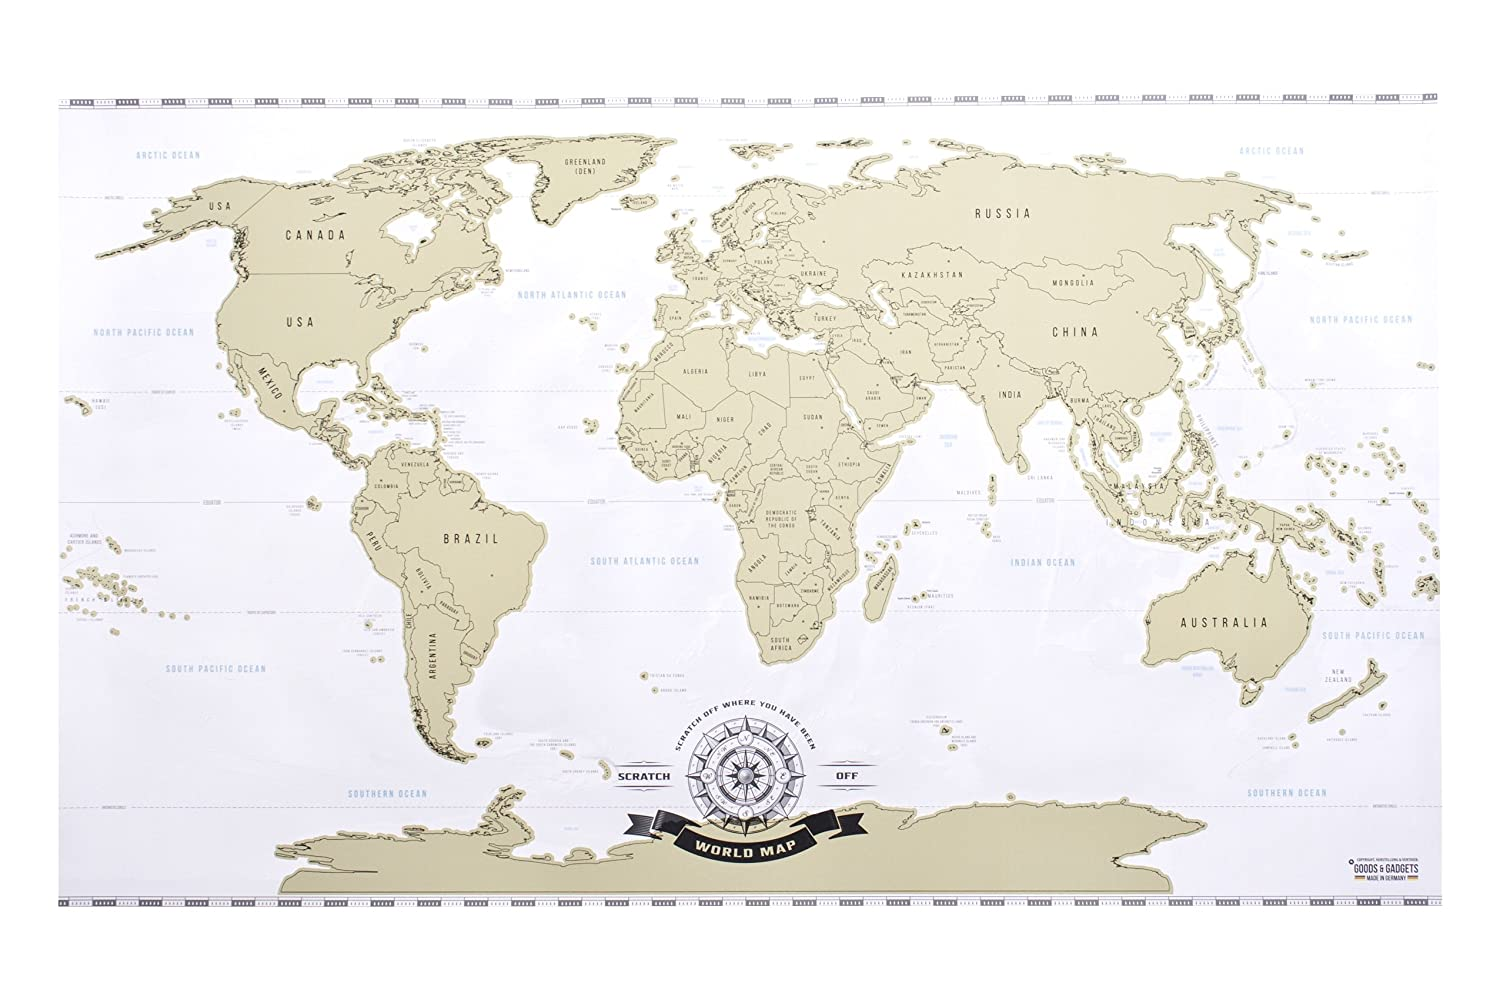 Amazon scratch off world map deluxe personalized travel map amazon scratch off world map deluxe personalized travel map poster xxl posters prints gumiabroncs Image collections